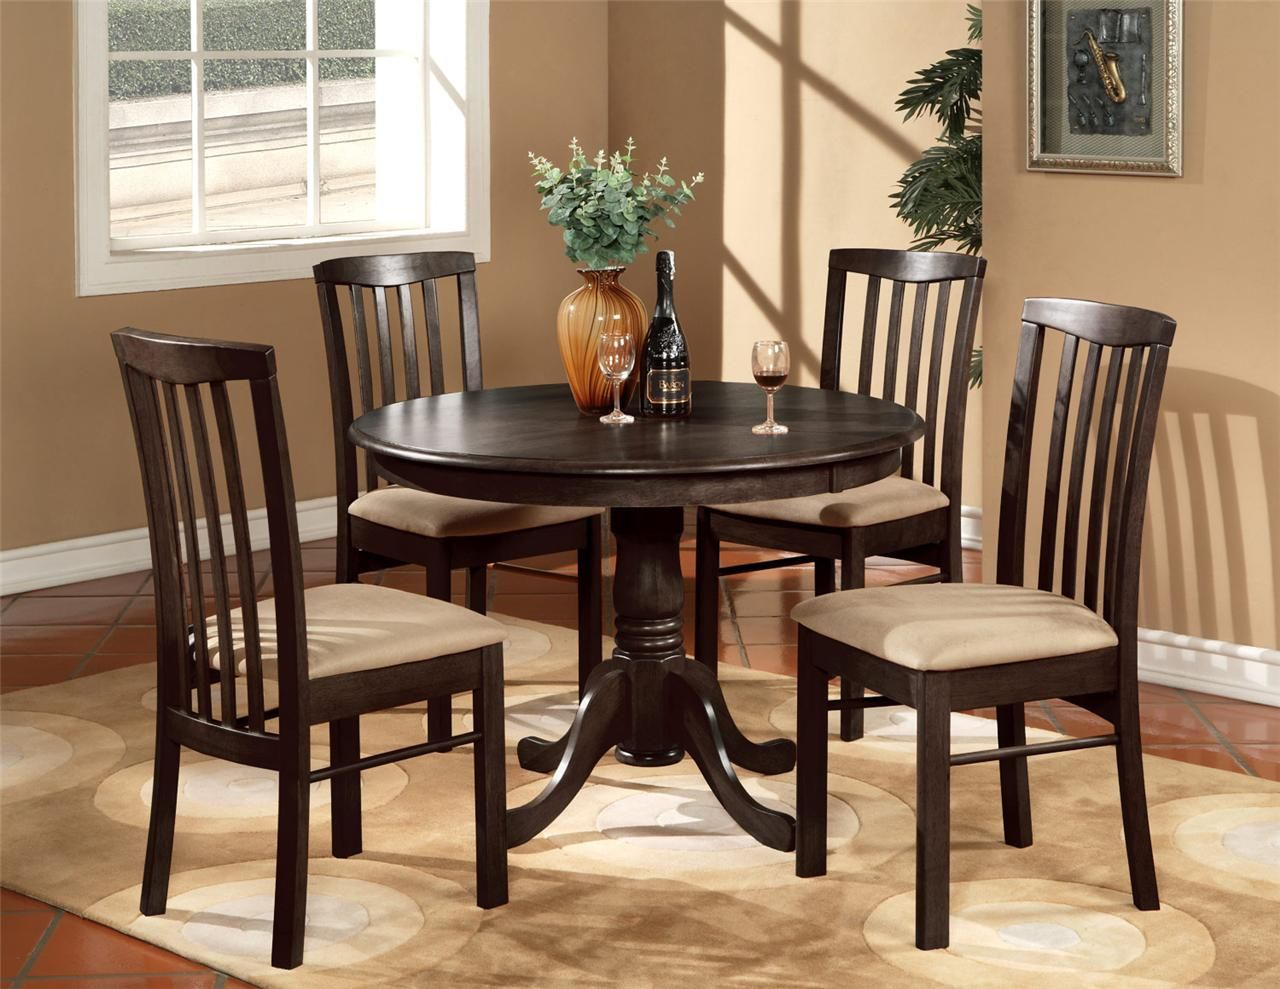 Kitchen Dinette Surplus Cabinets 5pc Round 42 Set Table And 4 Wood Or Upholstered Dark Counter Height Chirs Chairs